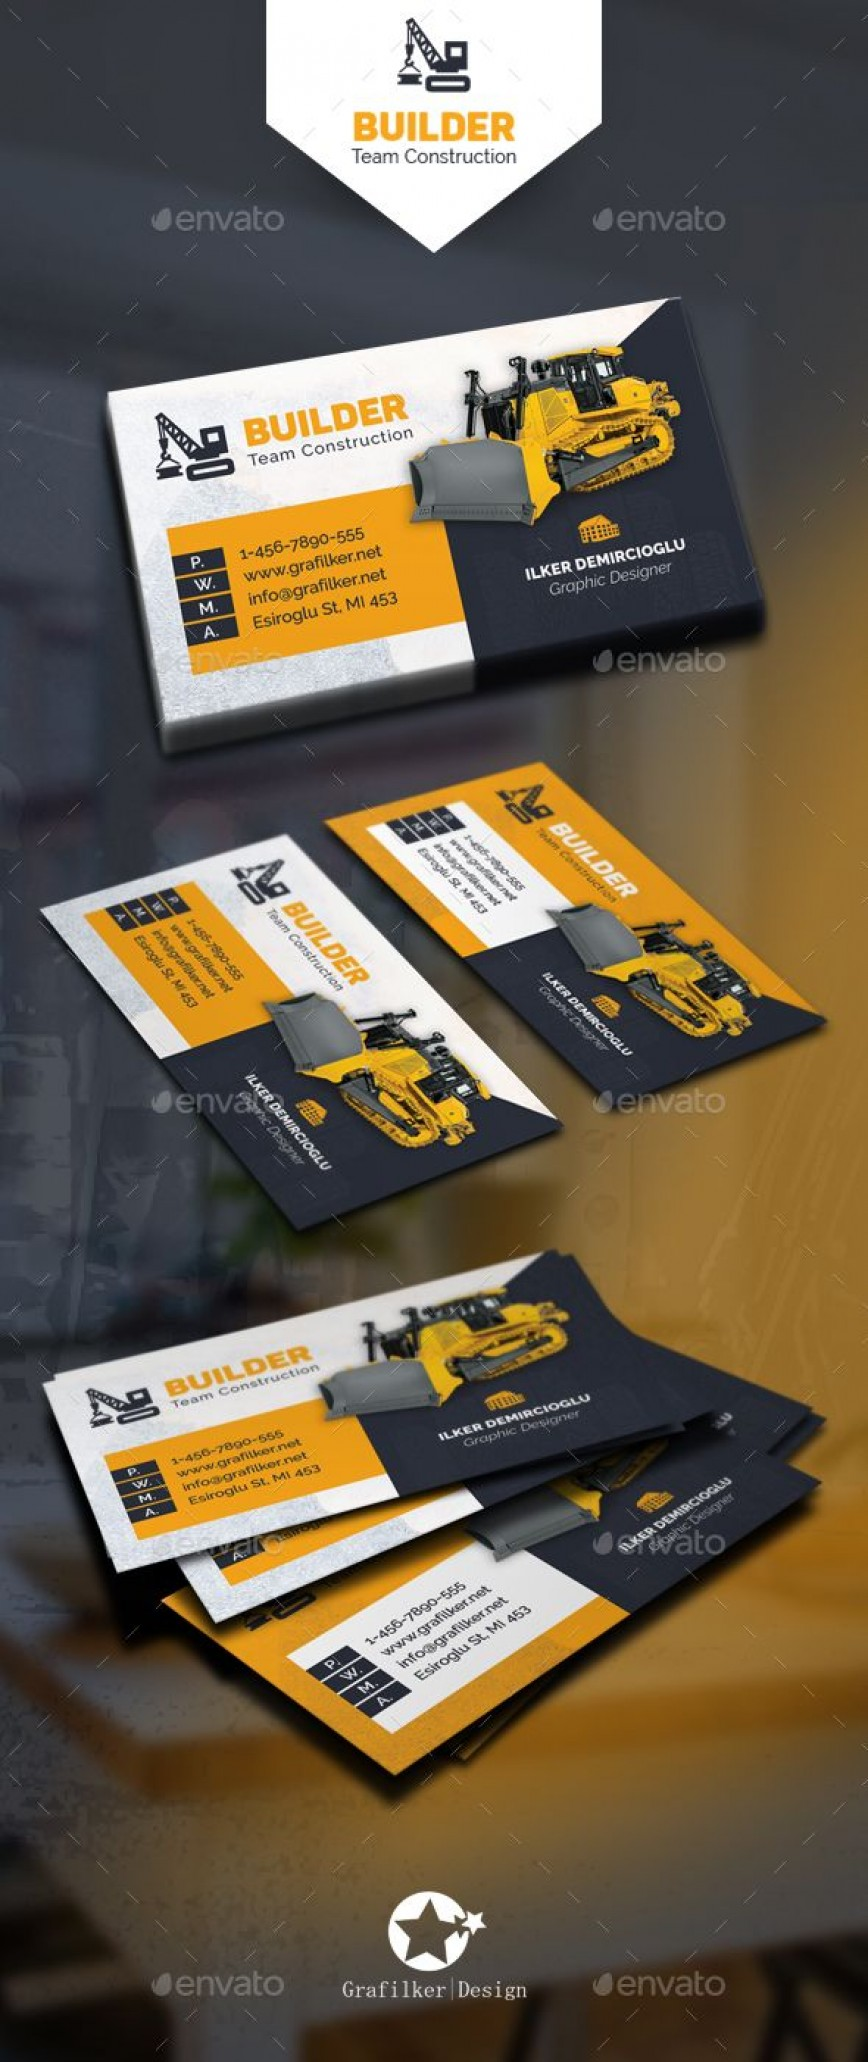 000 Magnificent Construction Busines Card Template Picture  Company Visiting Format Word For Material868